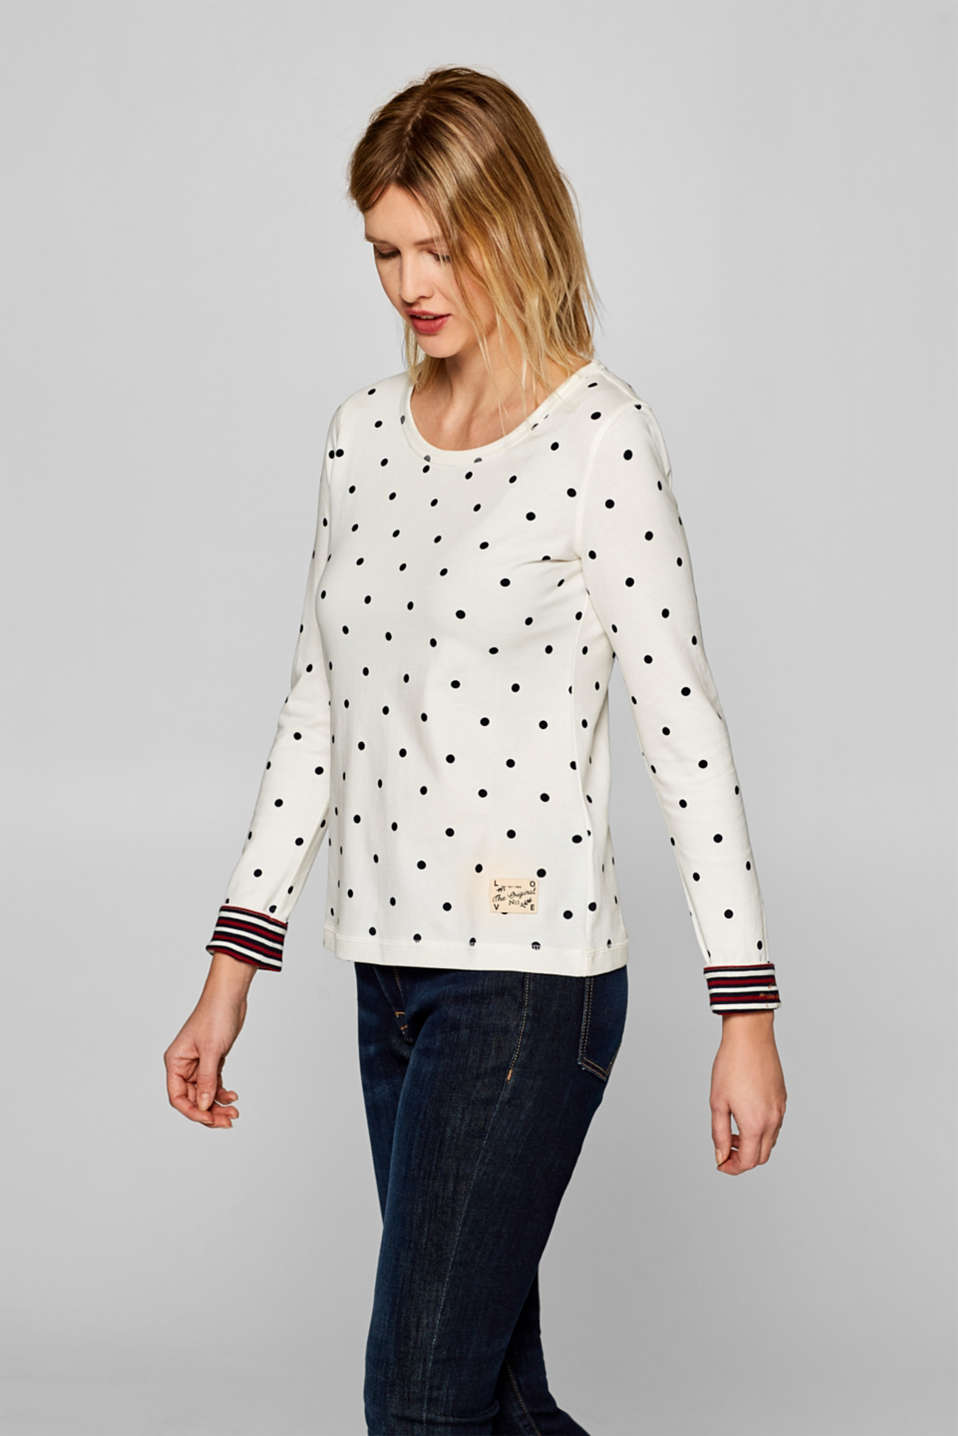 edc - Long sleeve top with polka dots, 100% cotton